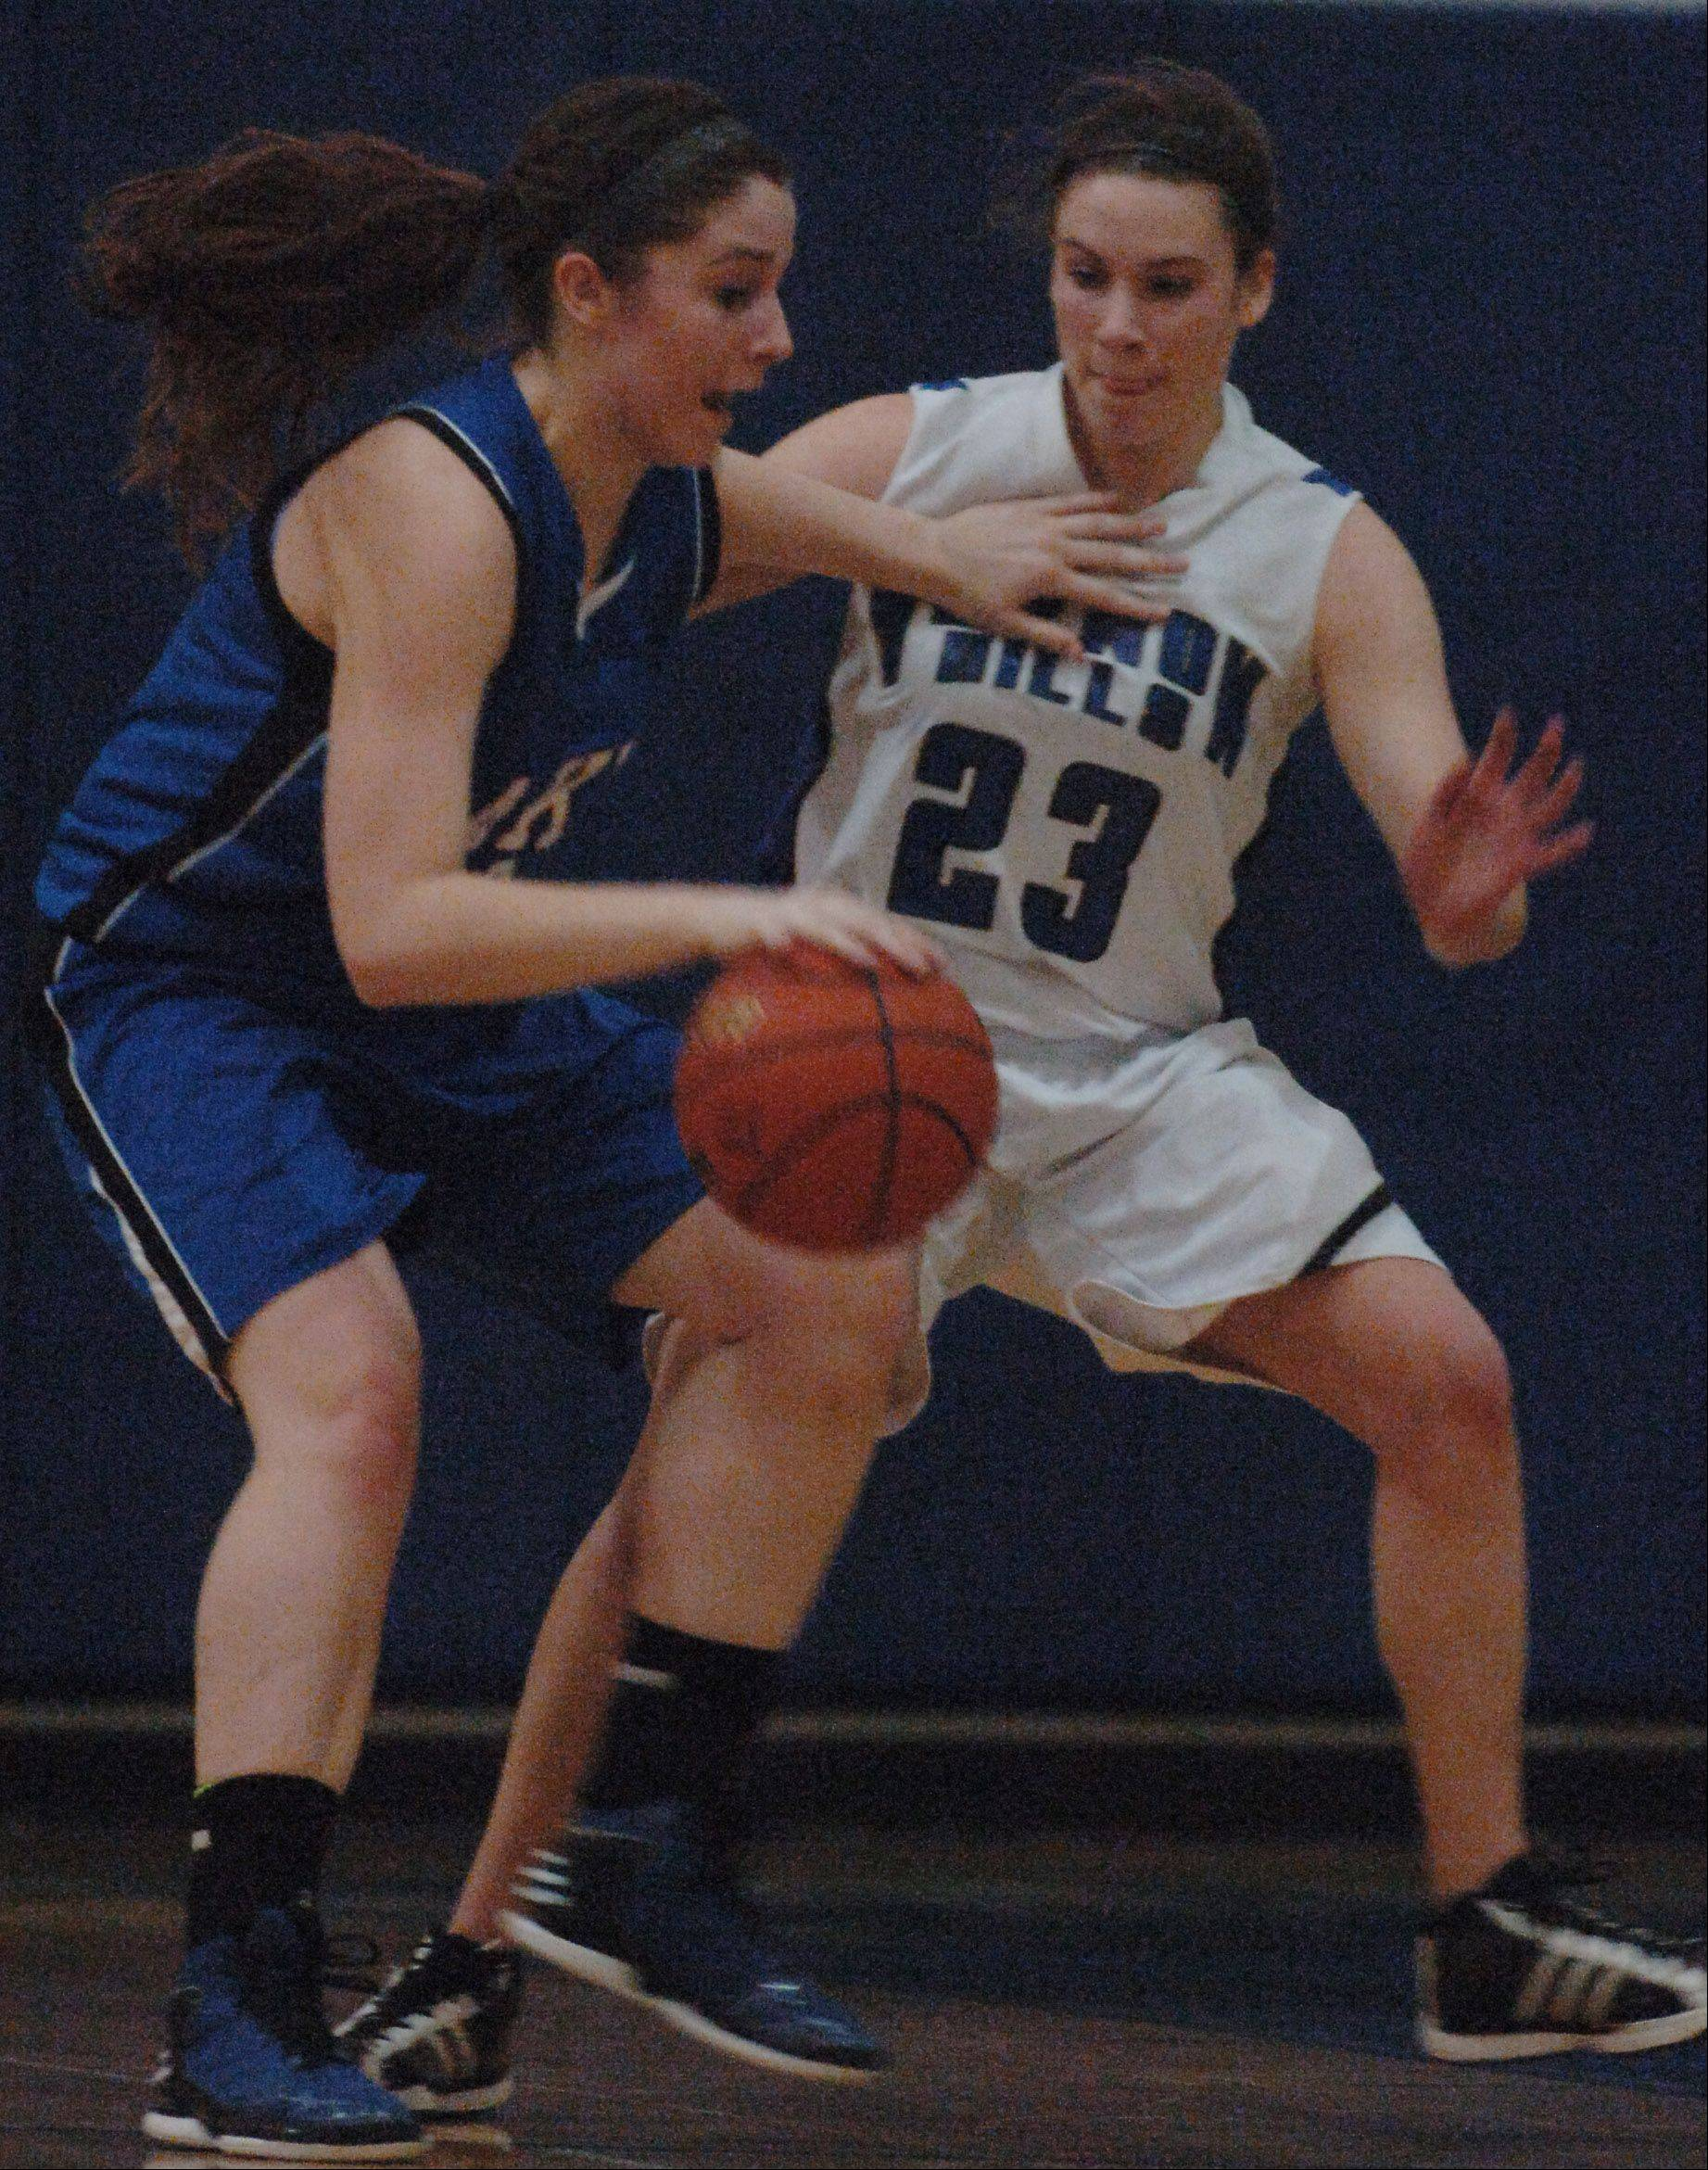 Paul Valade/pvalade@dailyherald.comLakes' Terese McMahon, left, keeps Vernon Hills' Brie Bahlmann at arm's length during Thursday's Class 3A basketball regional final in Lake Villa.